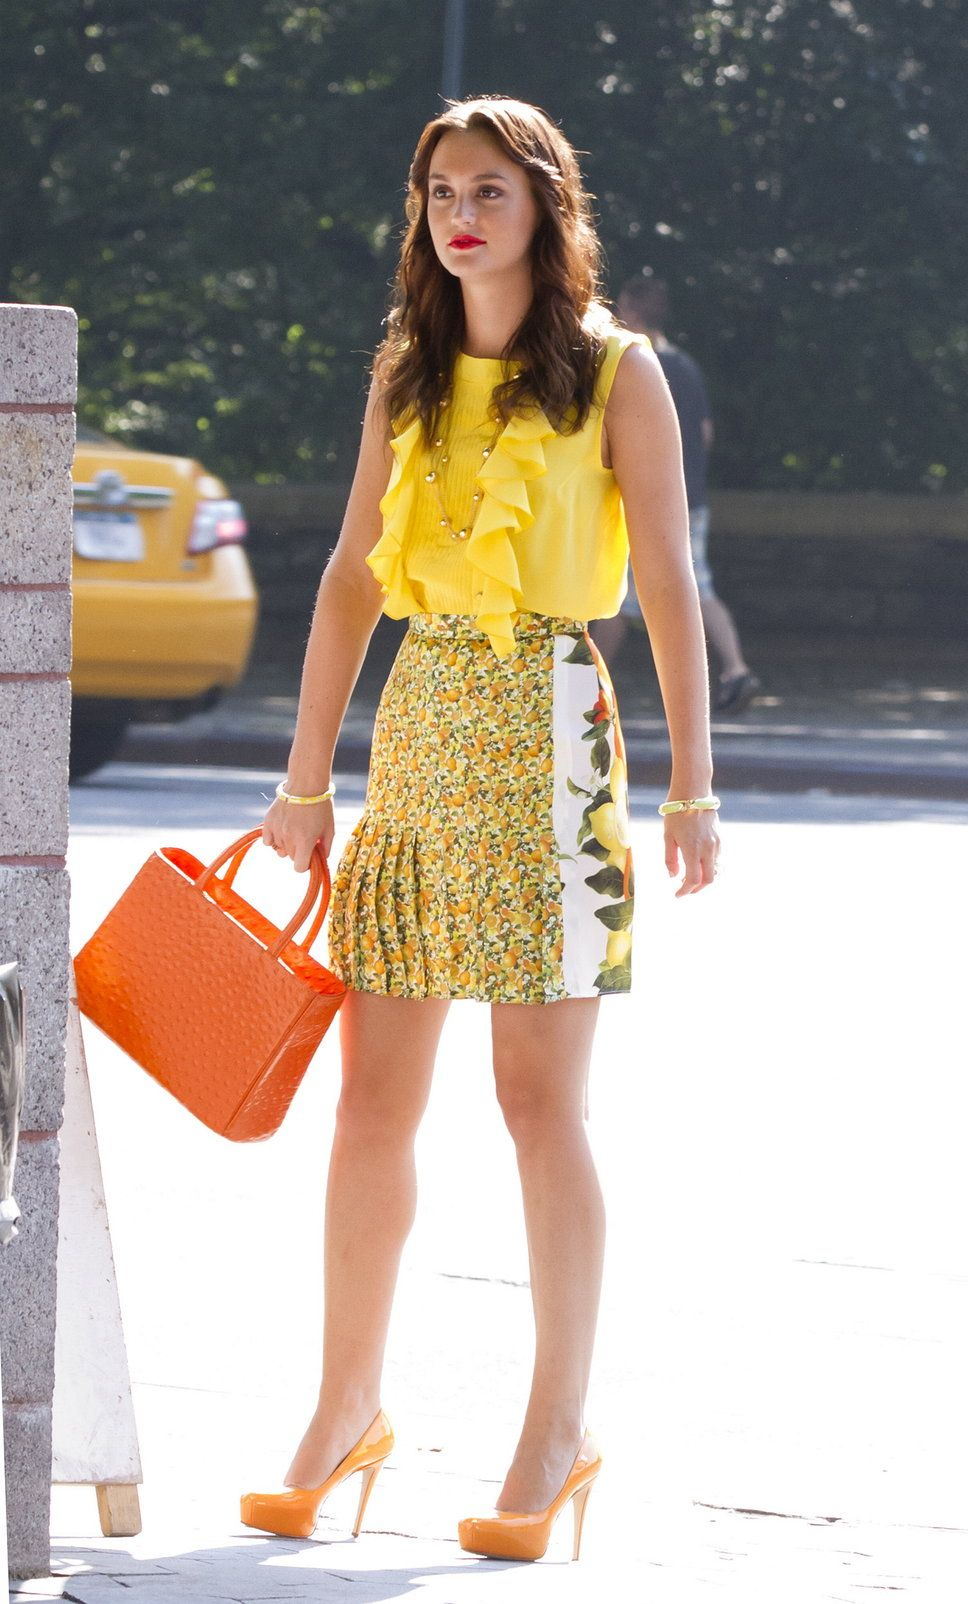 How to Get Blair Waldorf's Style